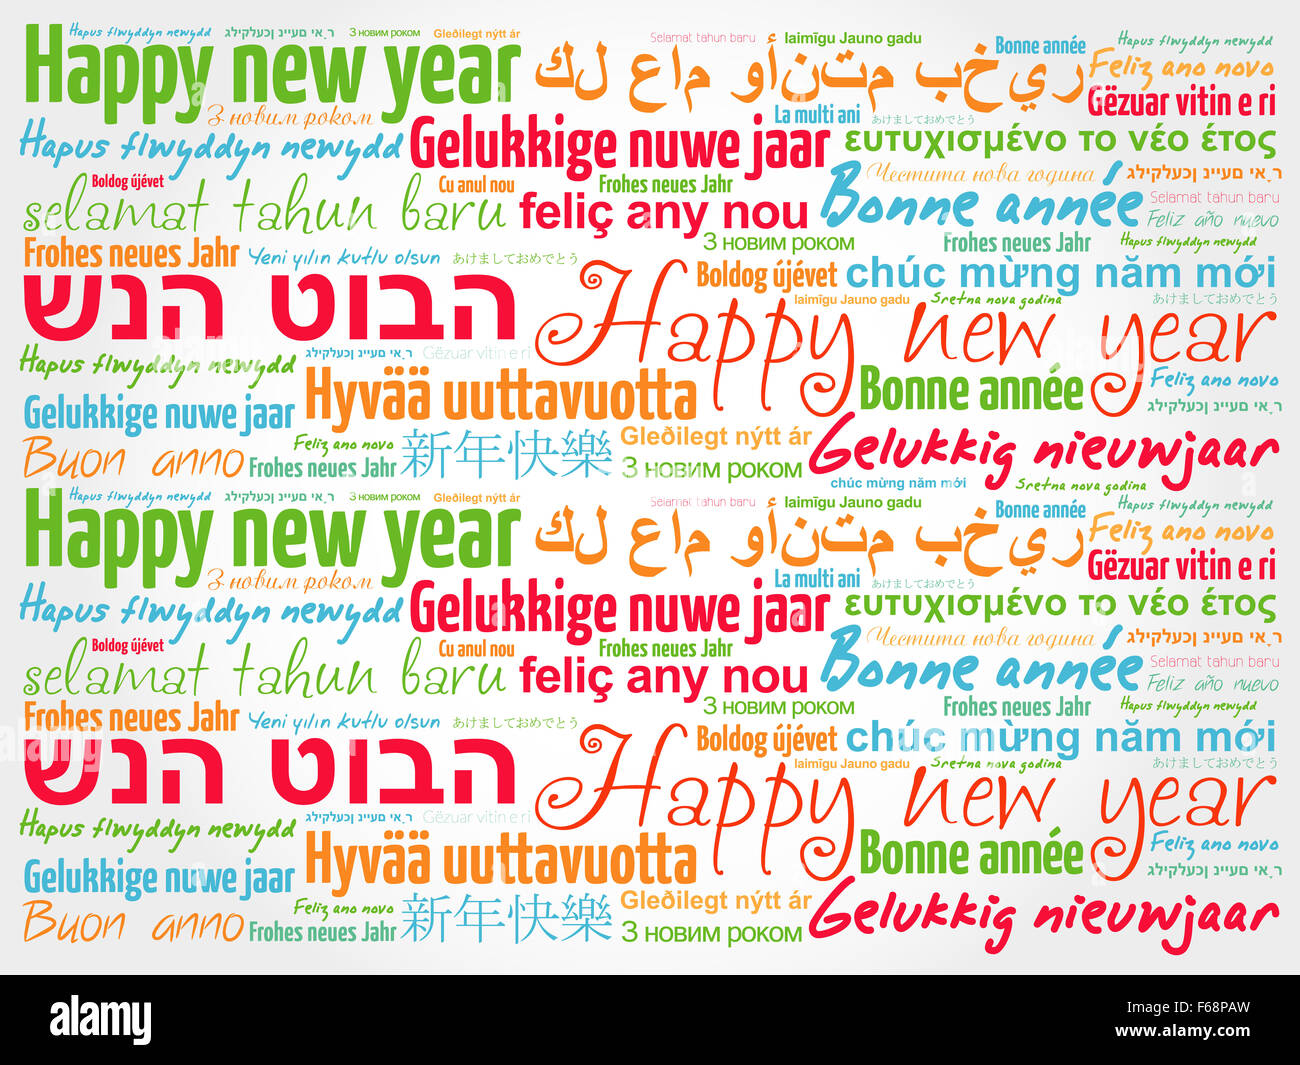 Happy new year in different languages celebration word cloud stock happy new year in different languages celebration word cloud greeting card m4hsunfo